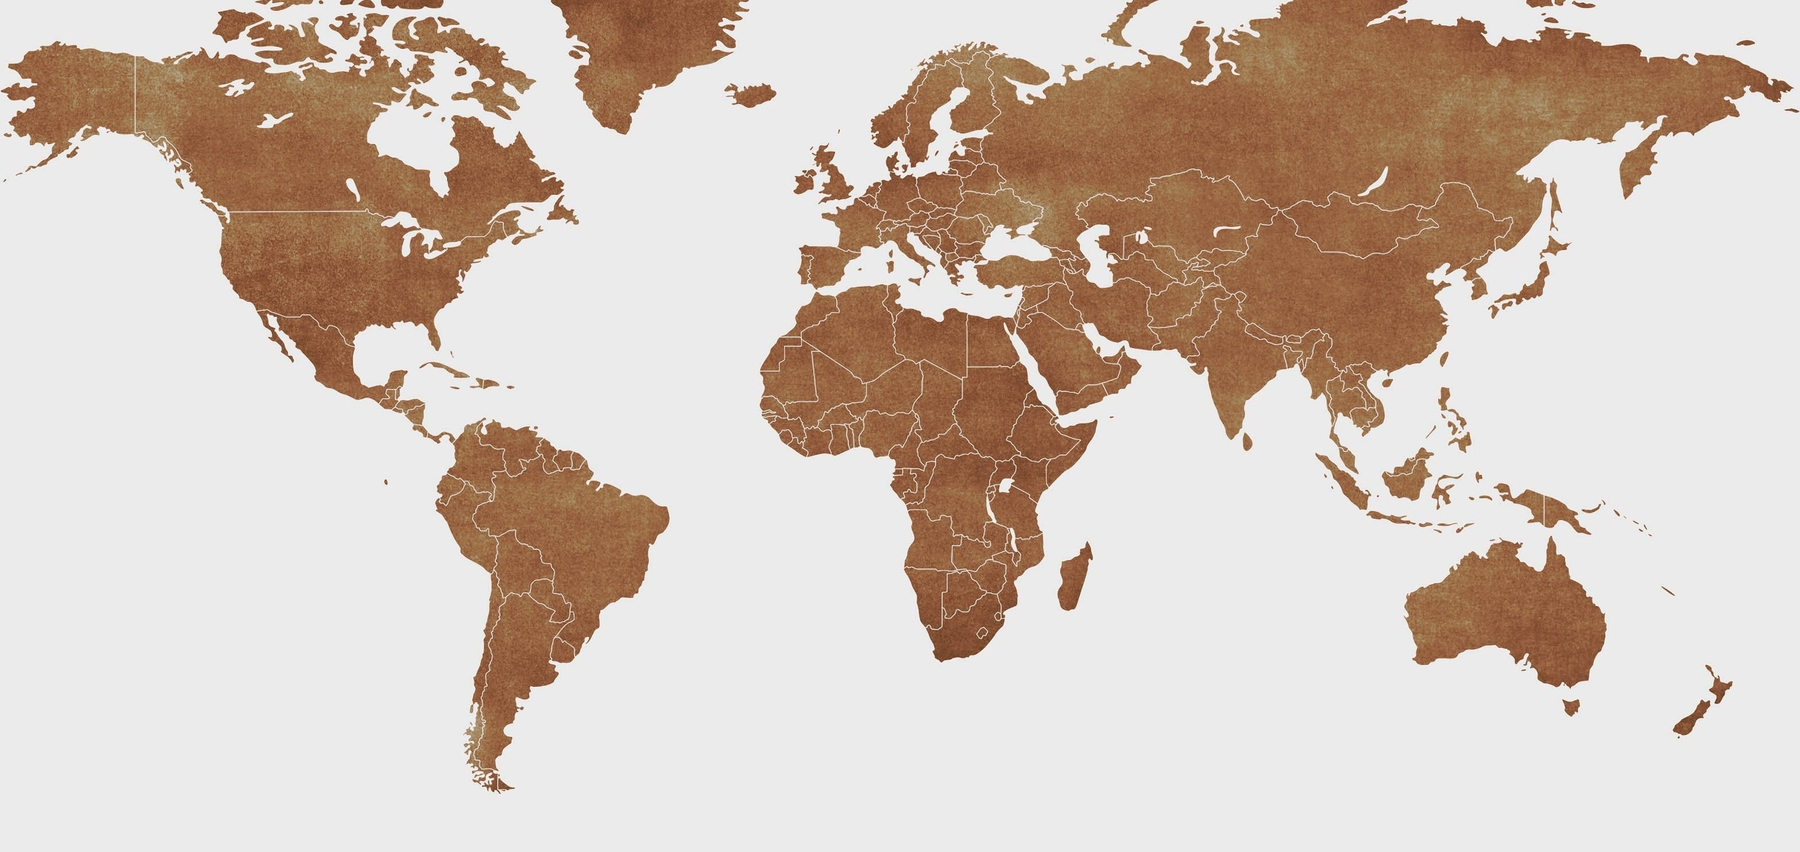 worldmap_brown